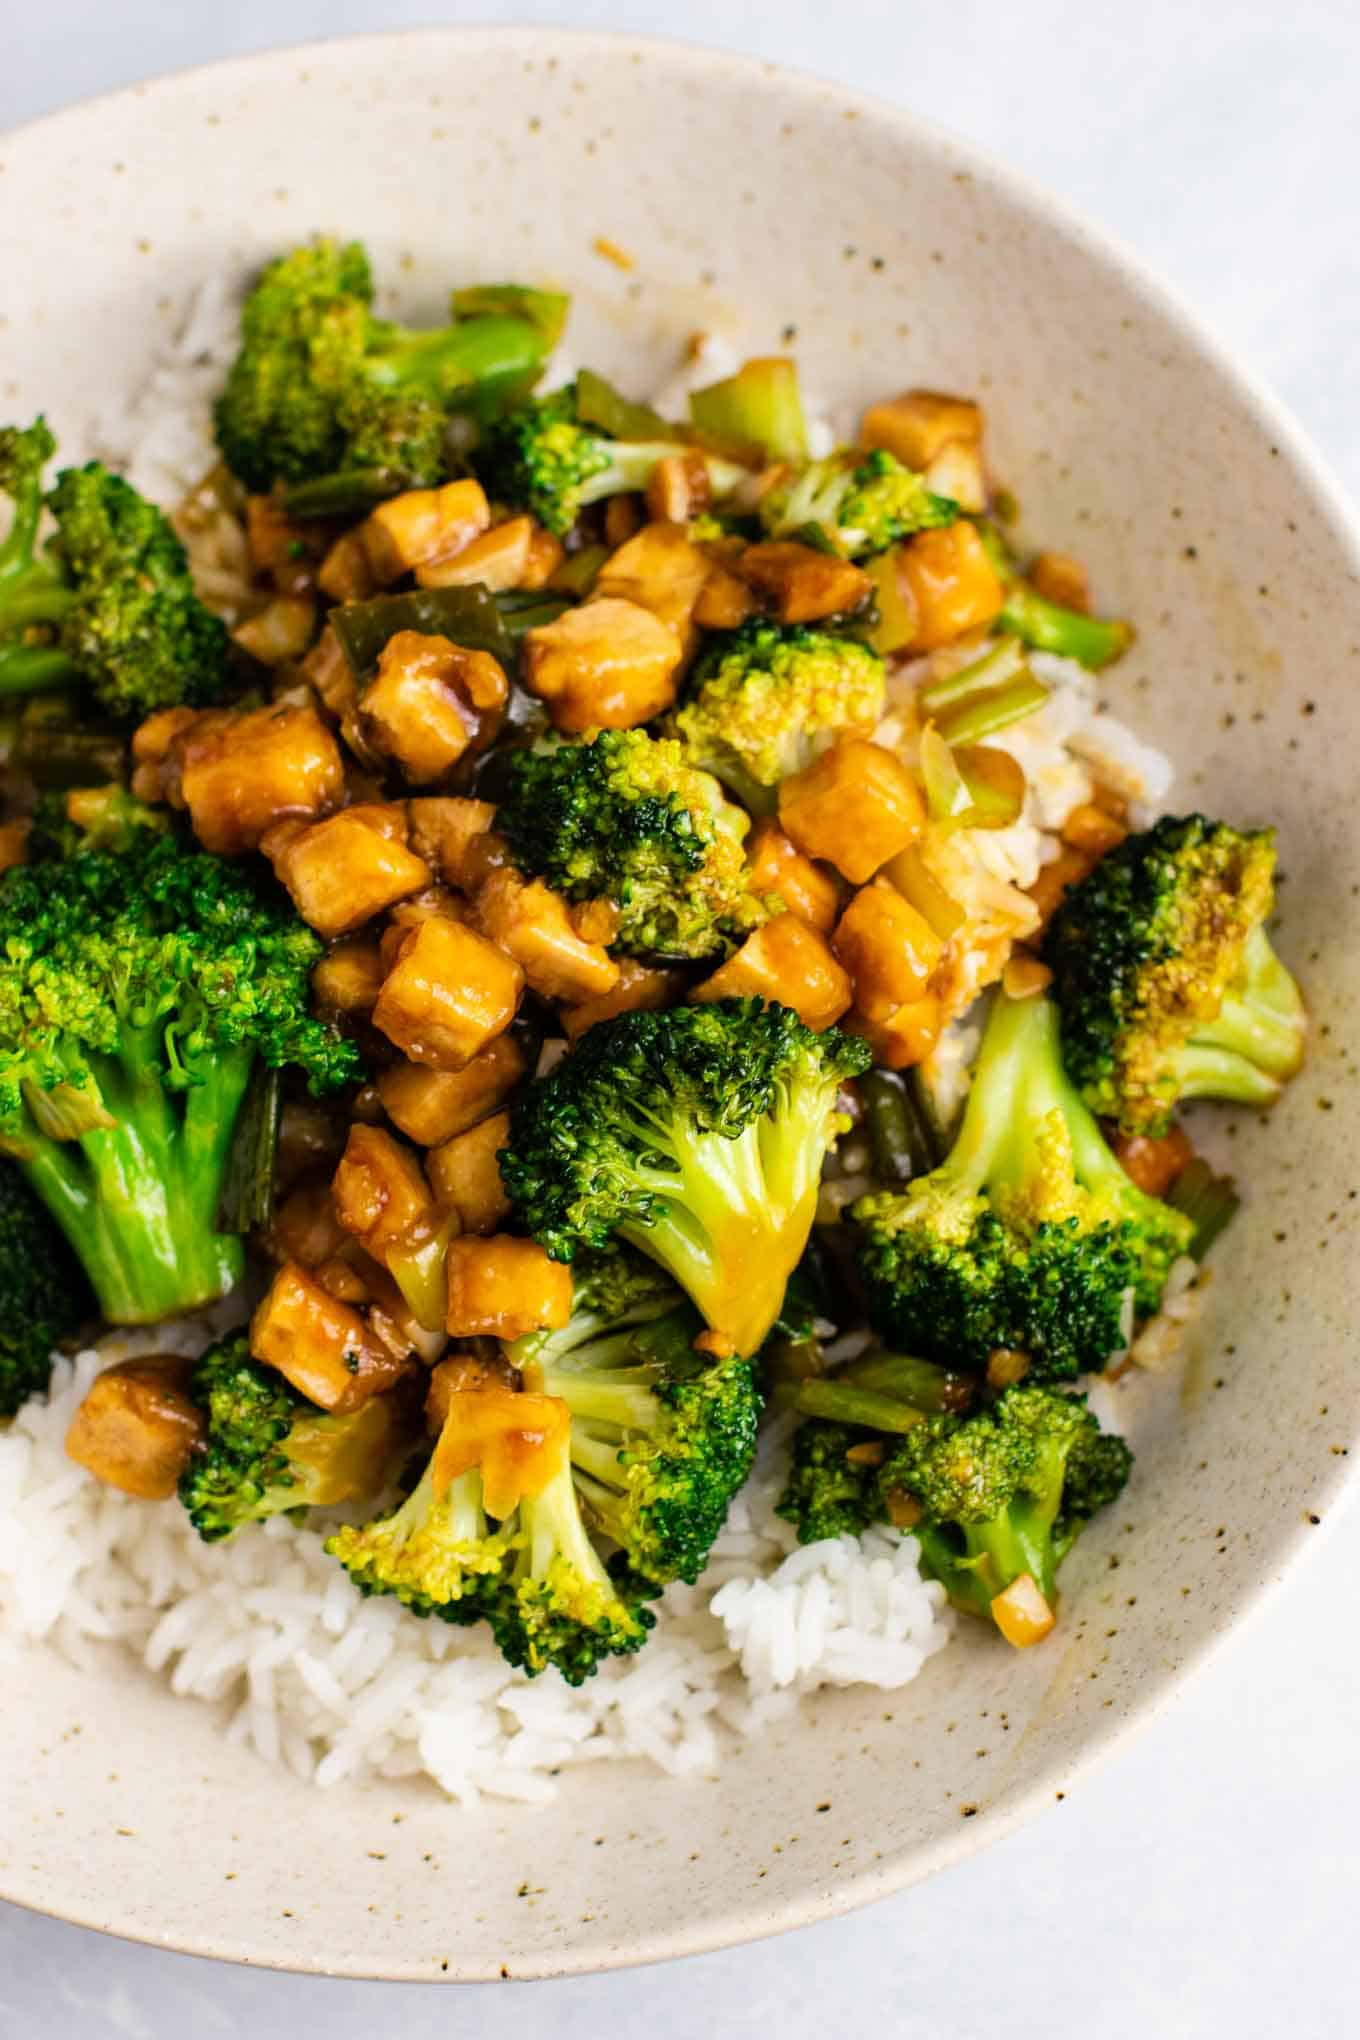 25 Best Vegetarian Recipes